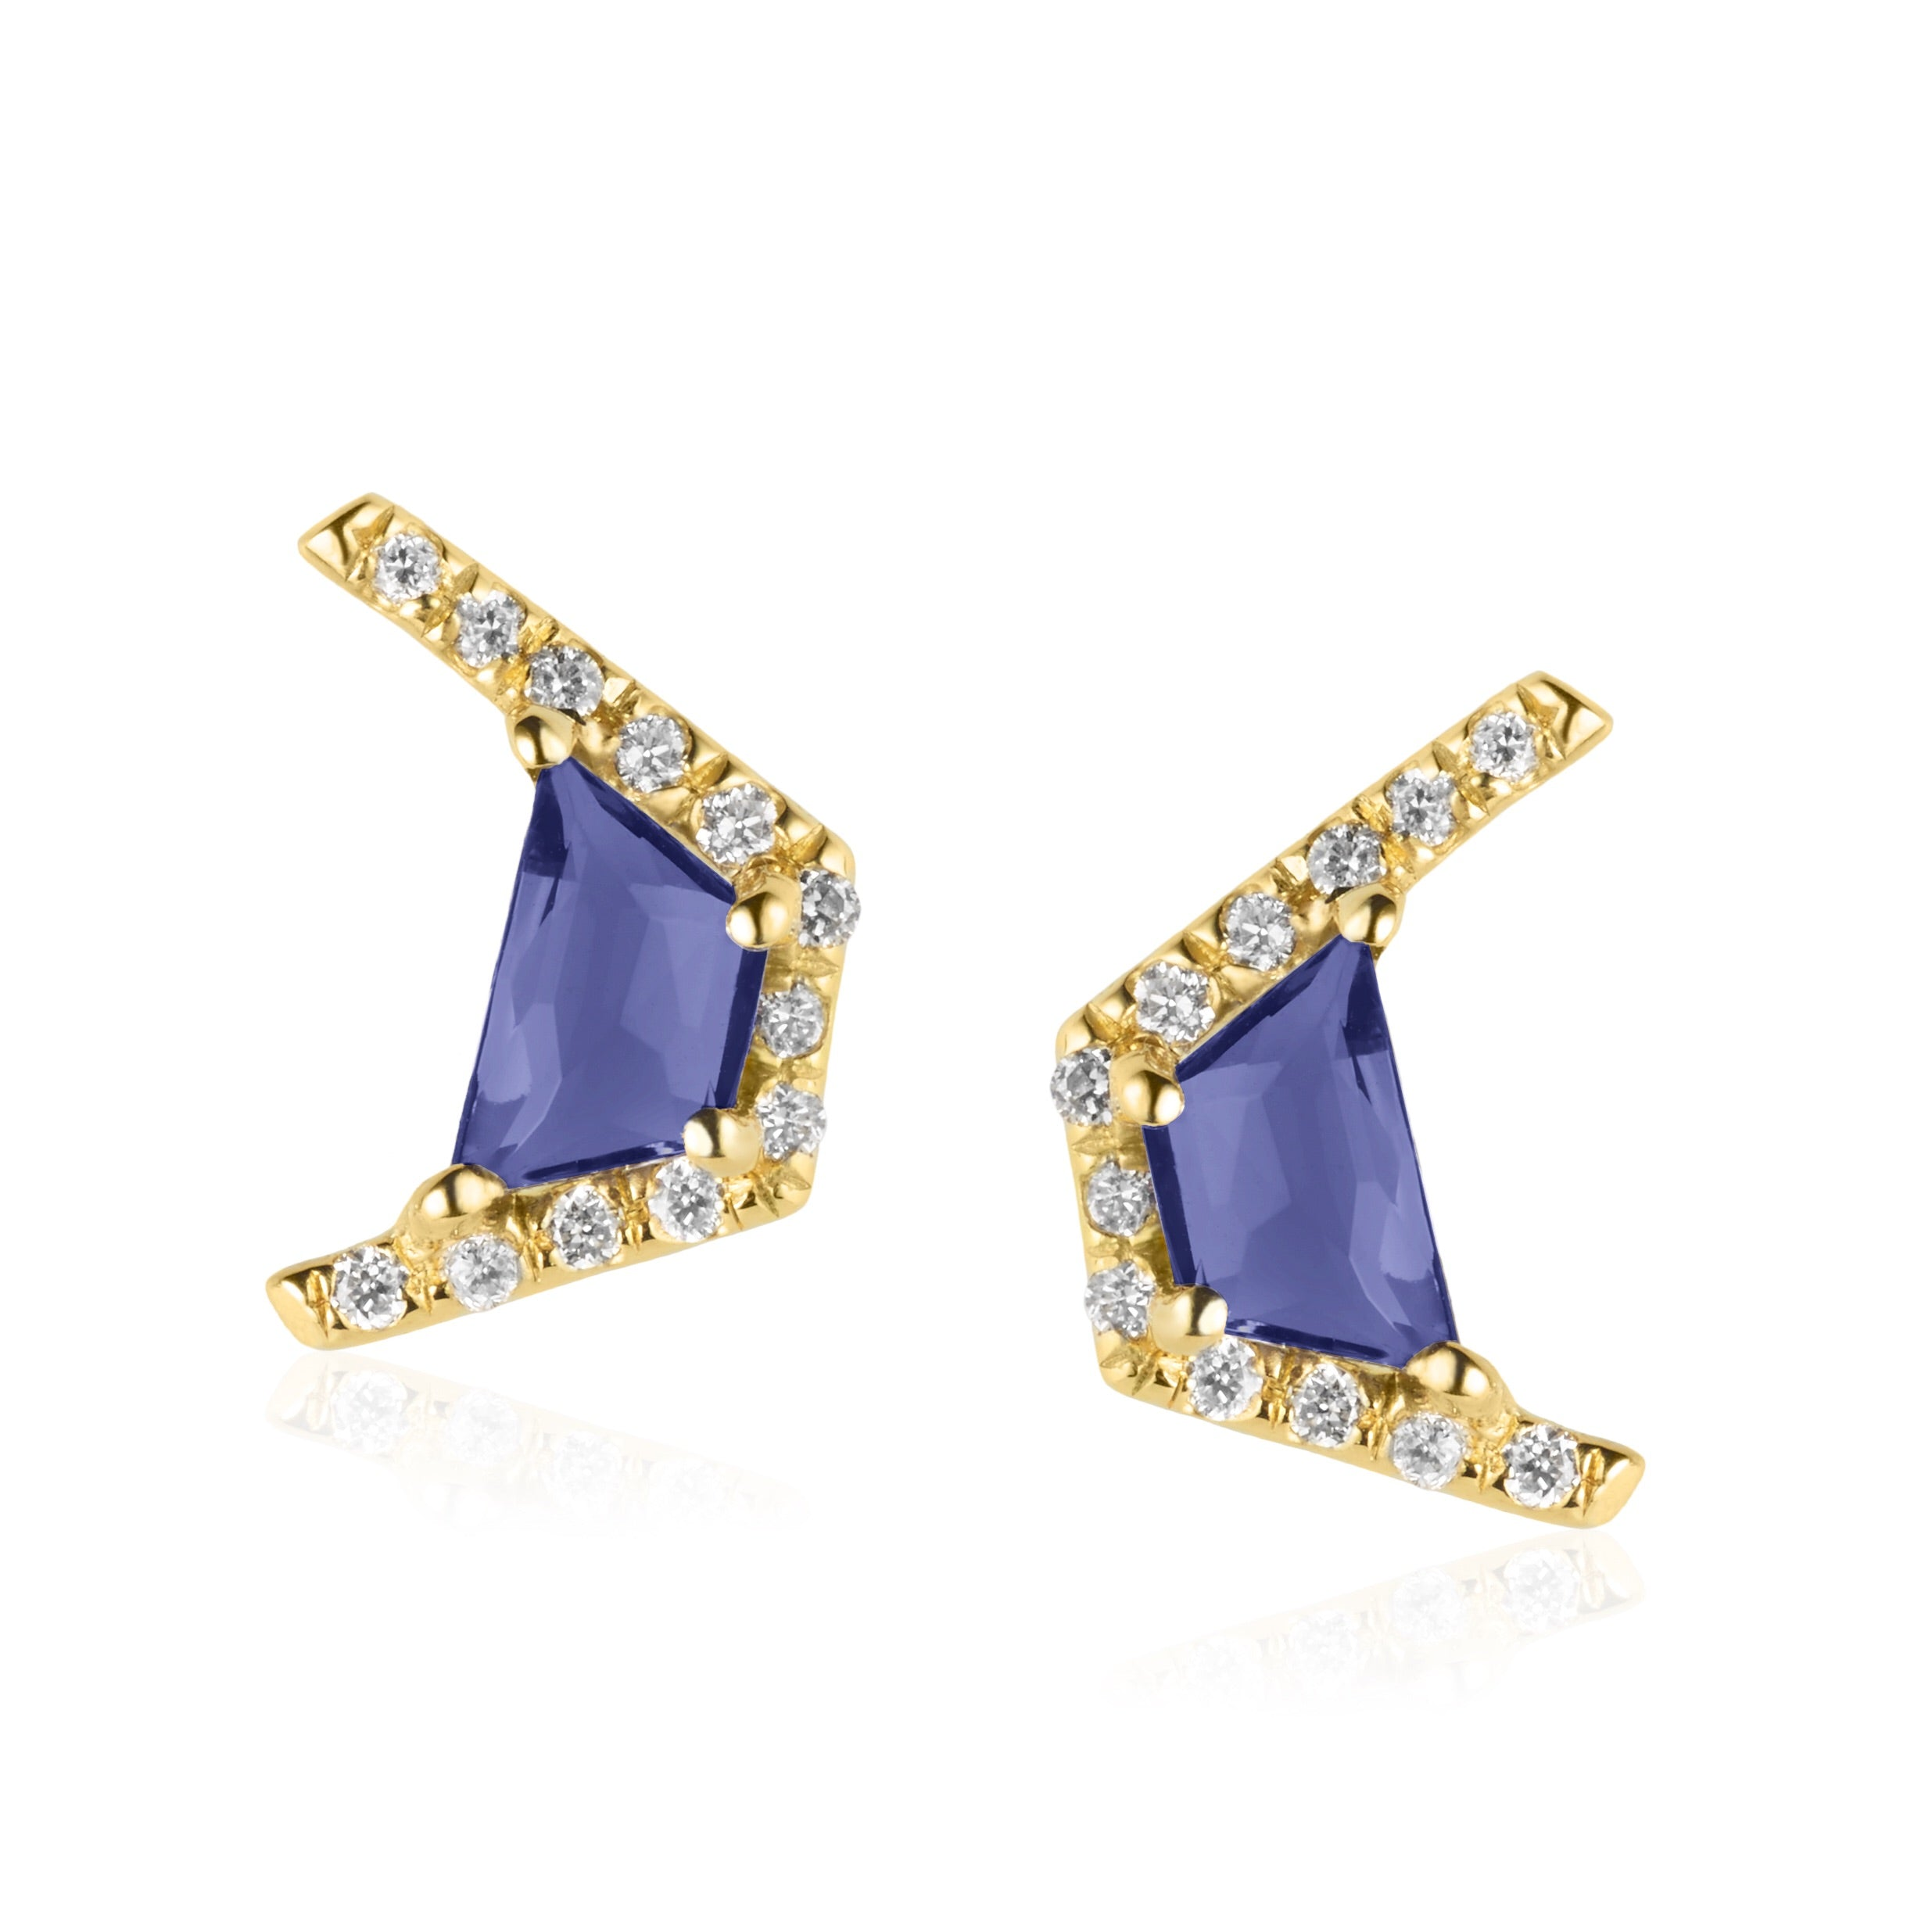 Micro Earrings Yellow Gold/Iolite